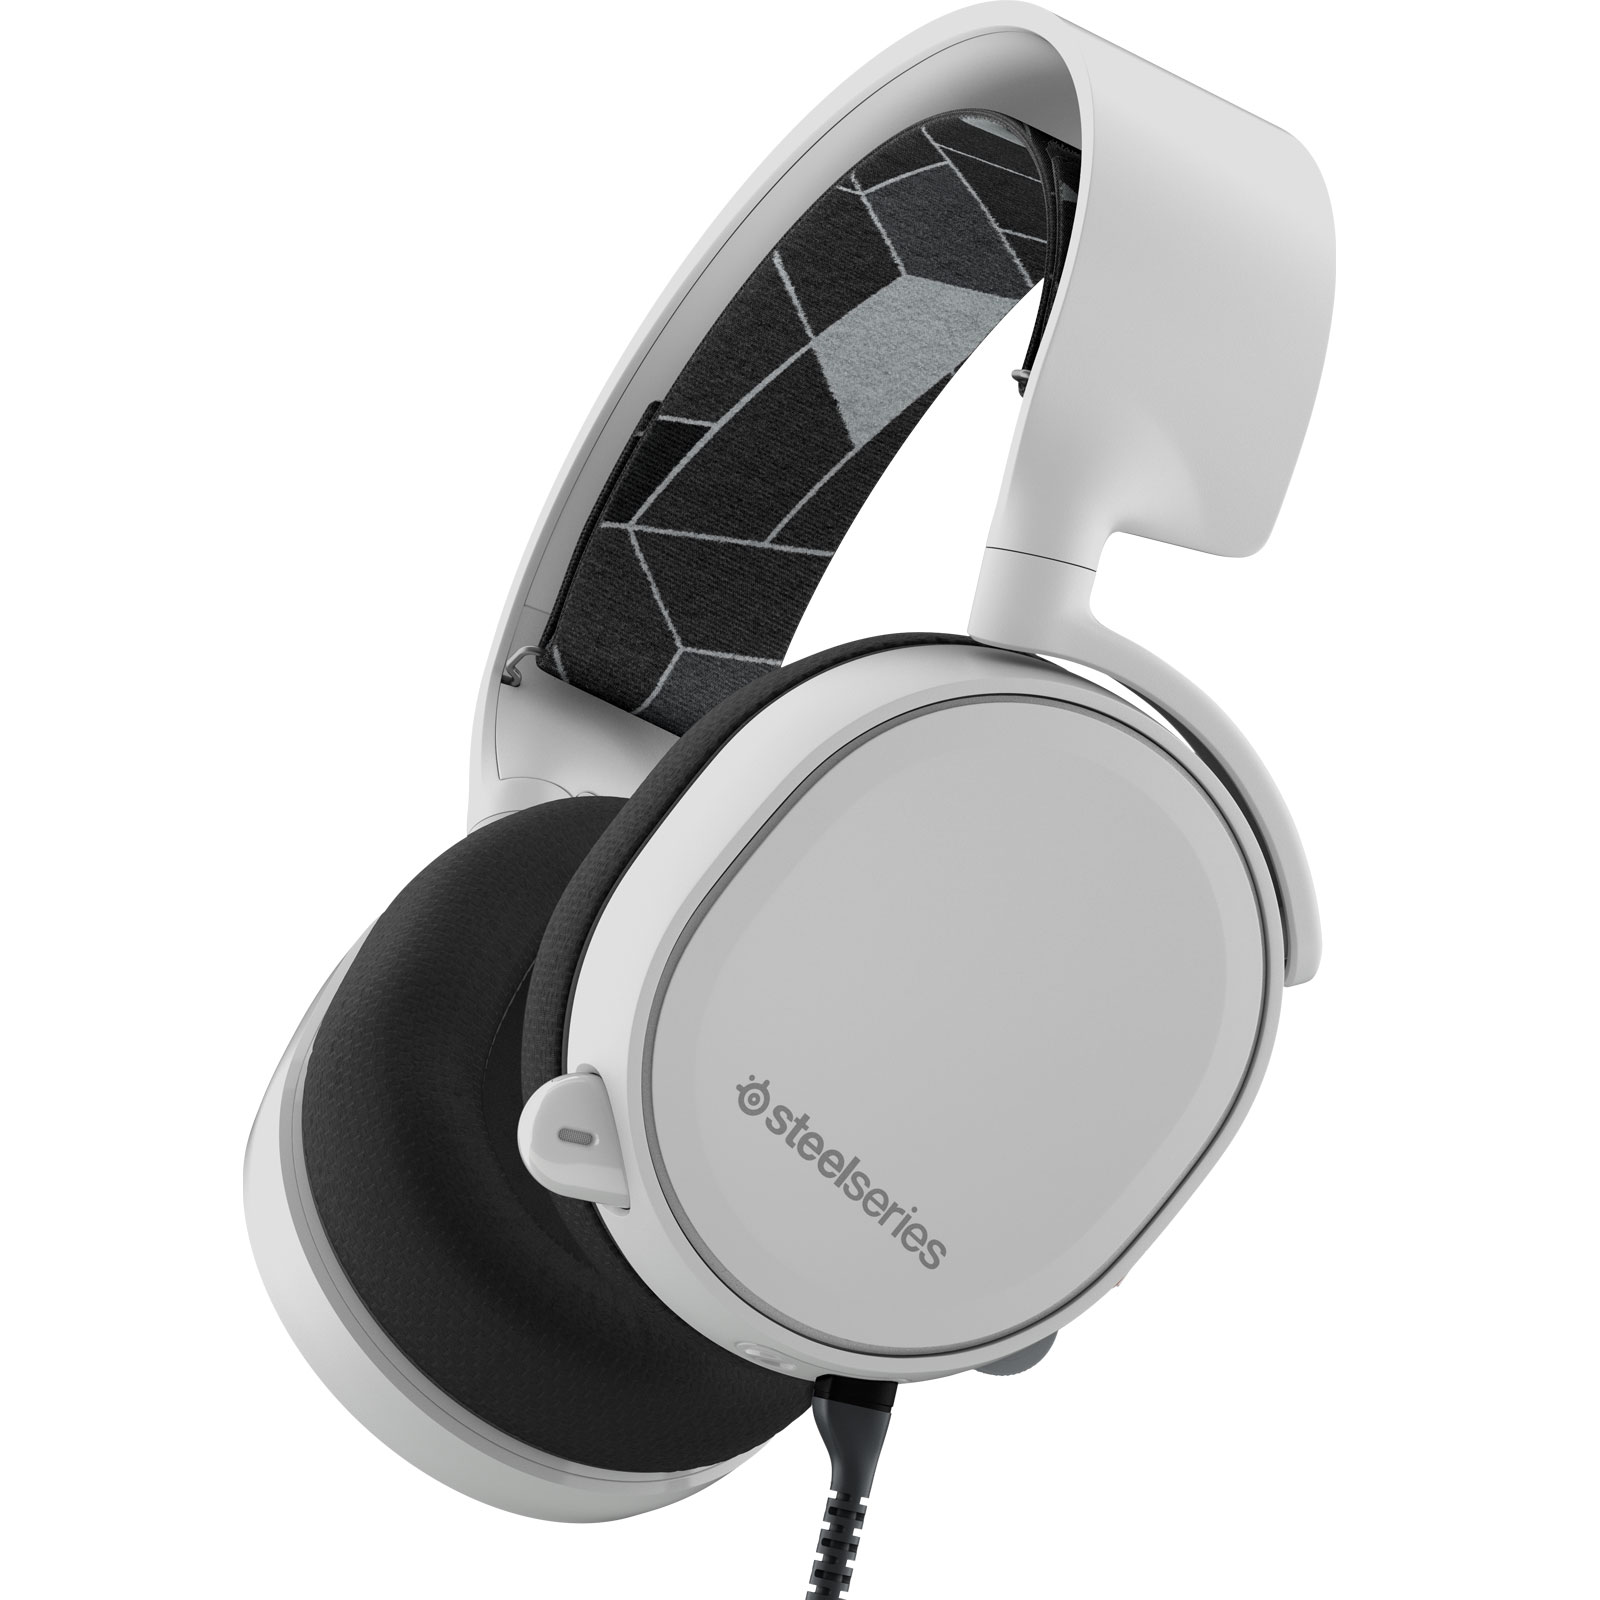 Micro-casque SteelSeries Arctis 3 (blanc) Casque gaming - Circum-aural fermé - Son Surround 7.1 - Microphone unidirectionnel rétractable avec suppression du bruit - Jack - Compatible PC/Mac/VR/Mobiles et consoles